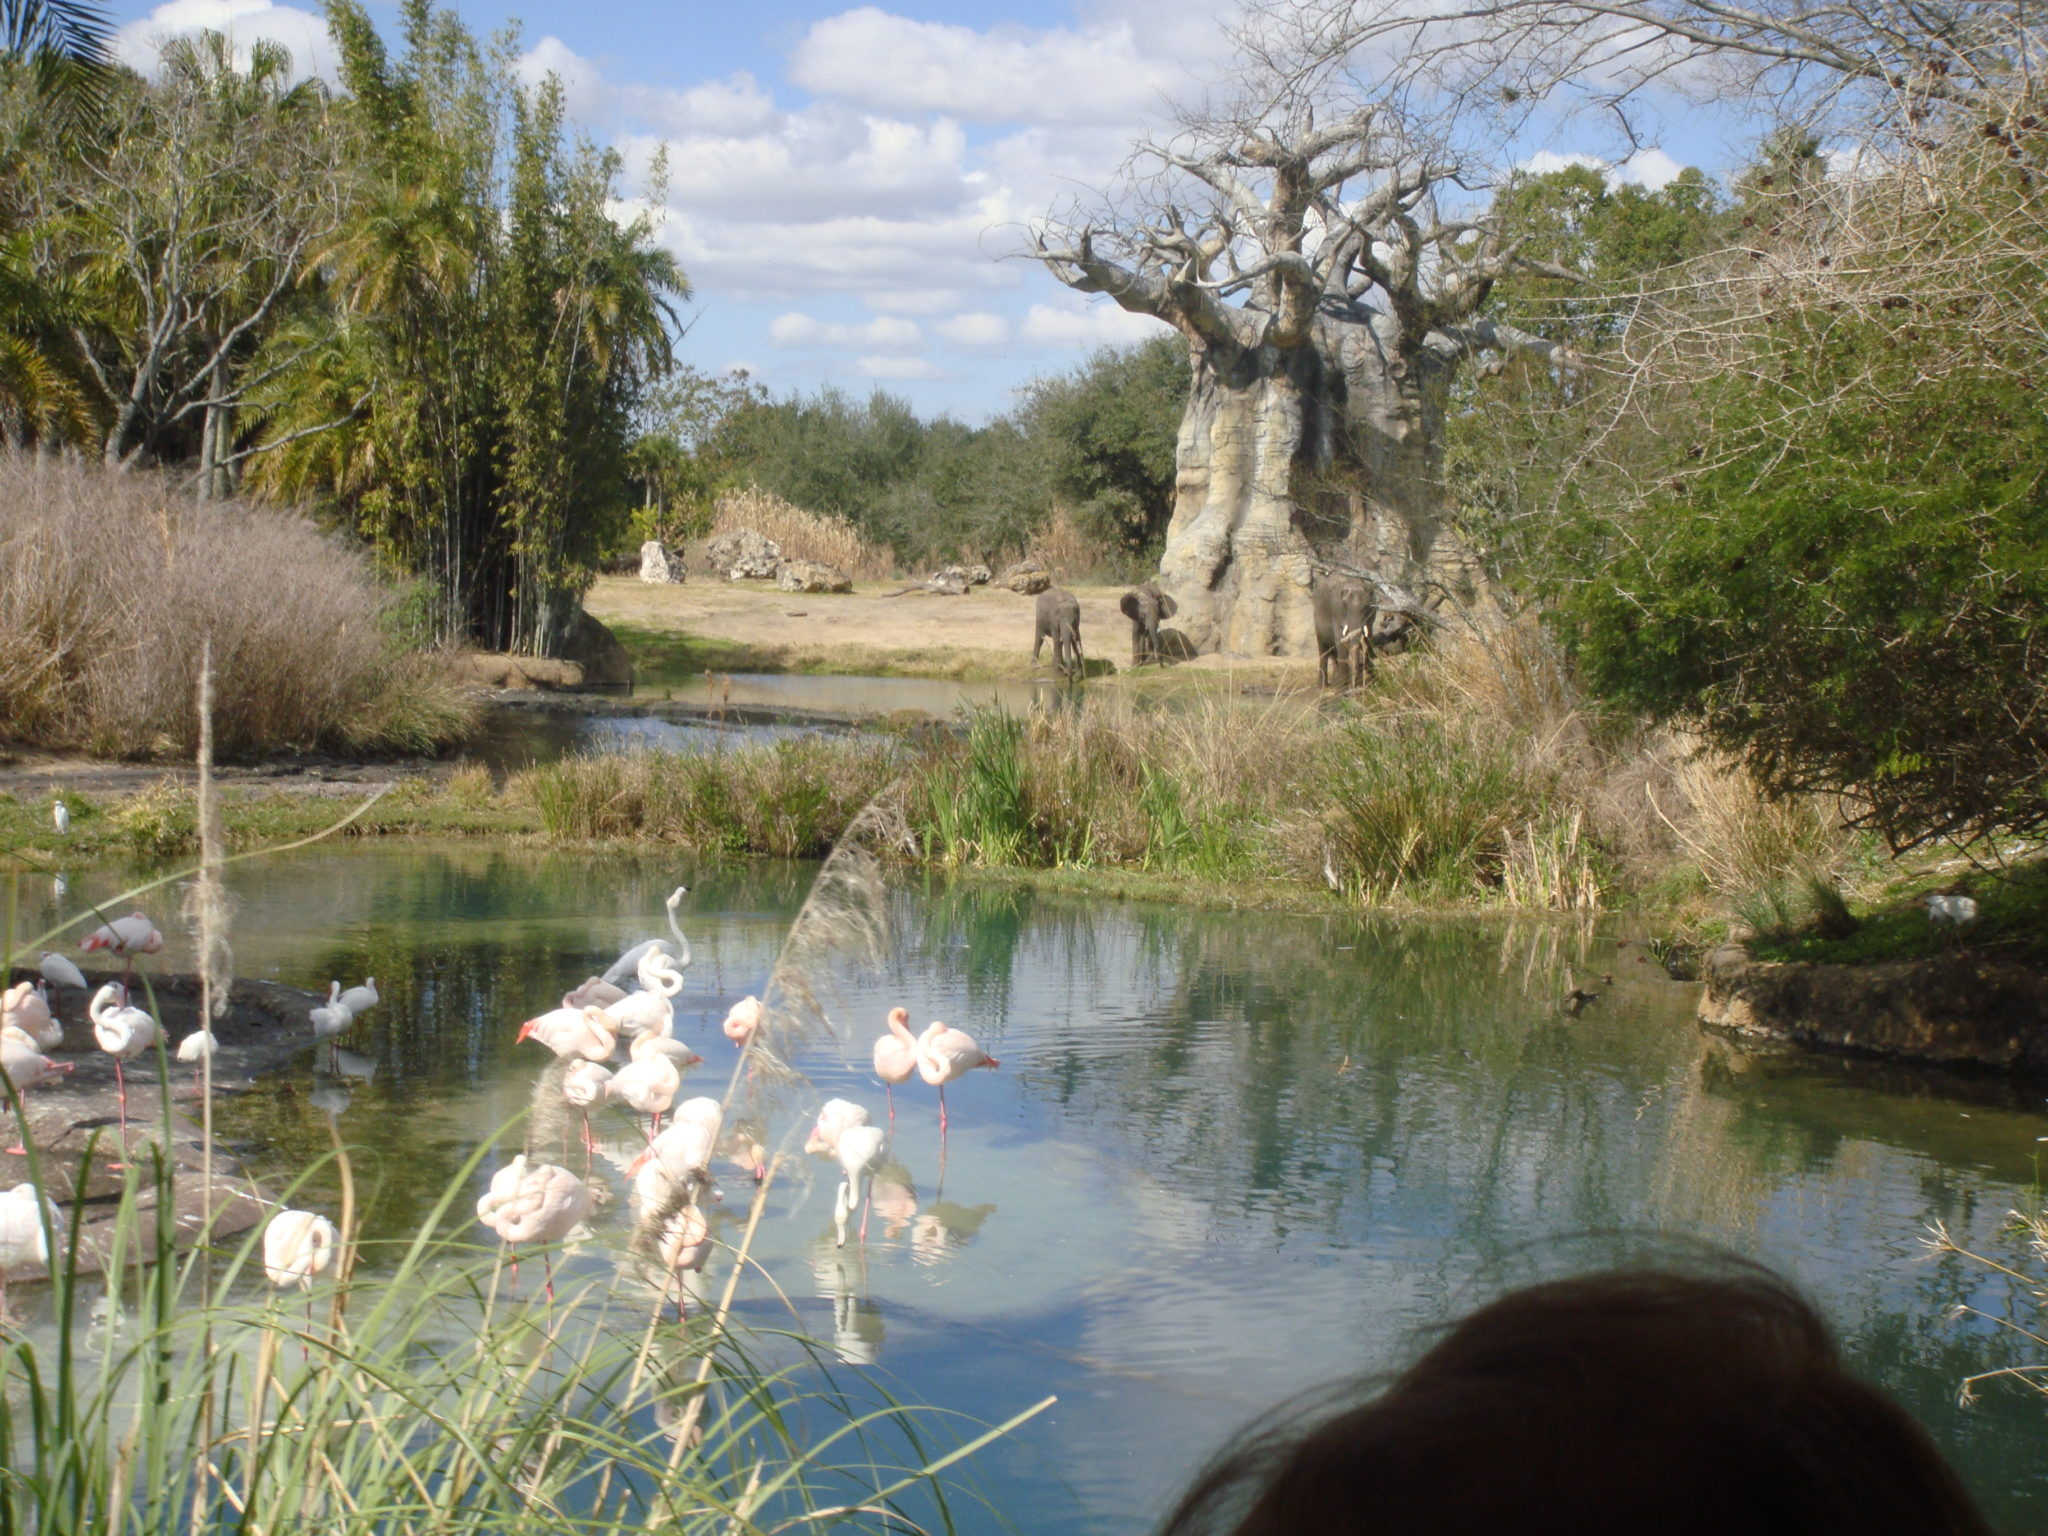 Animal Kingdom en el mundo de Disney